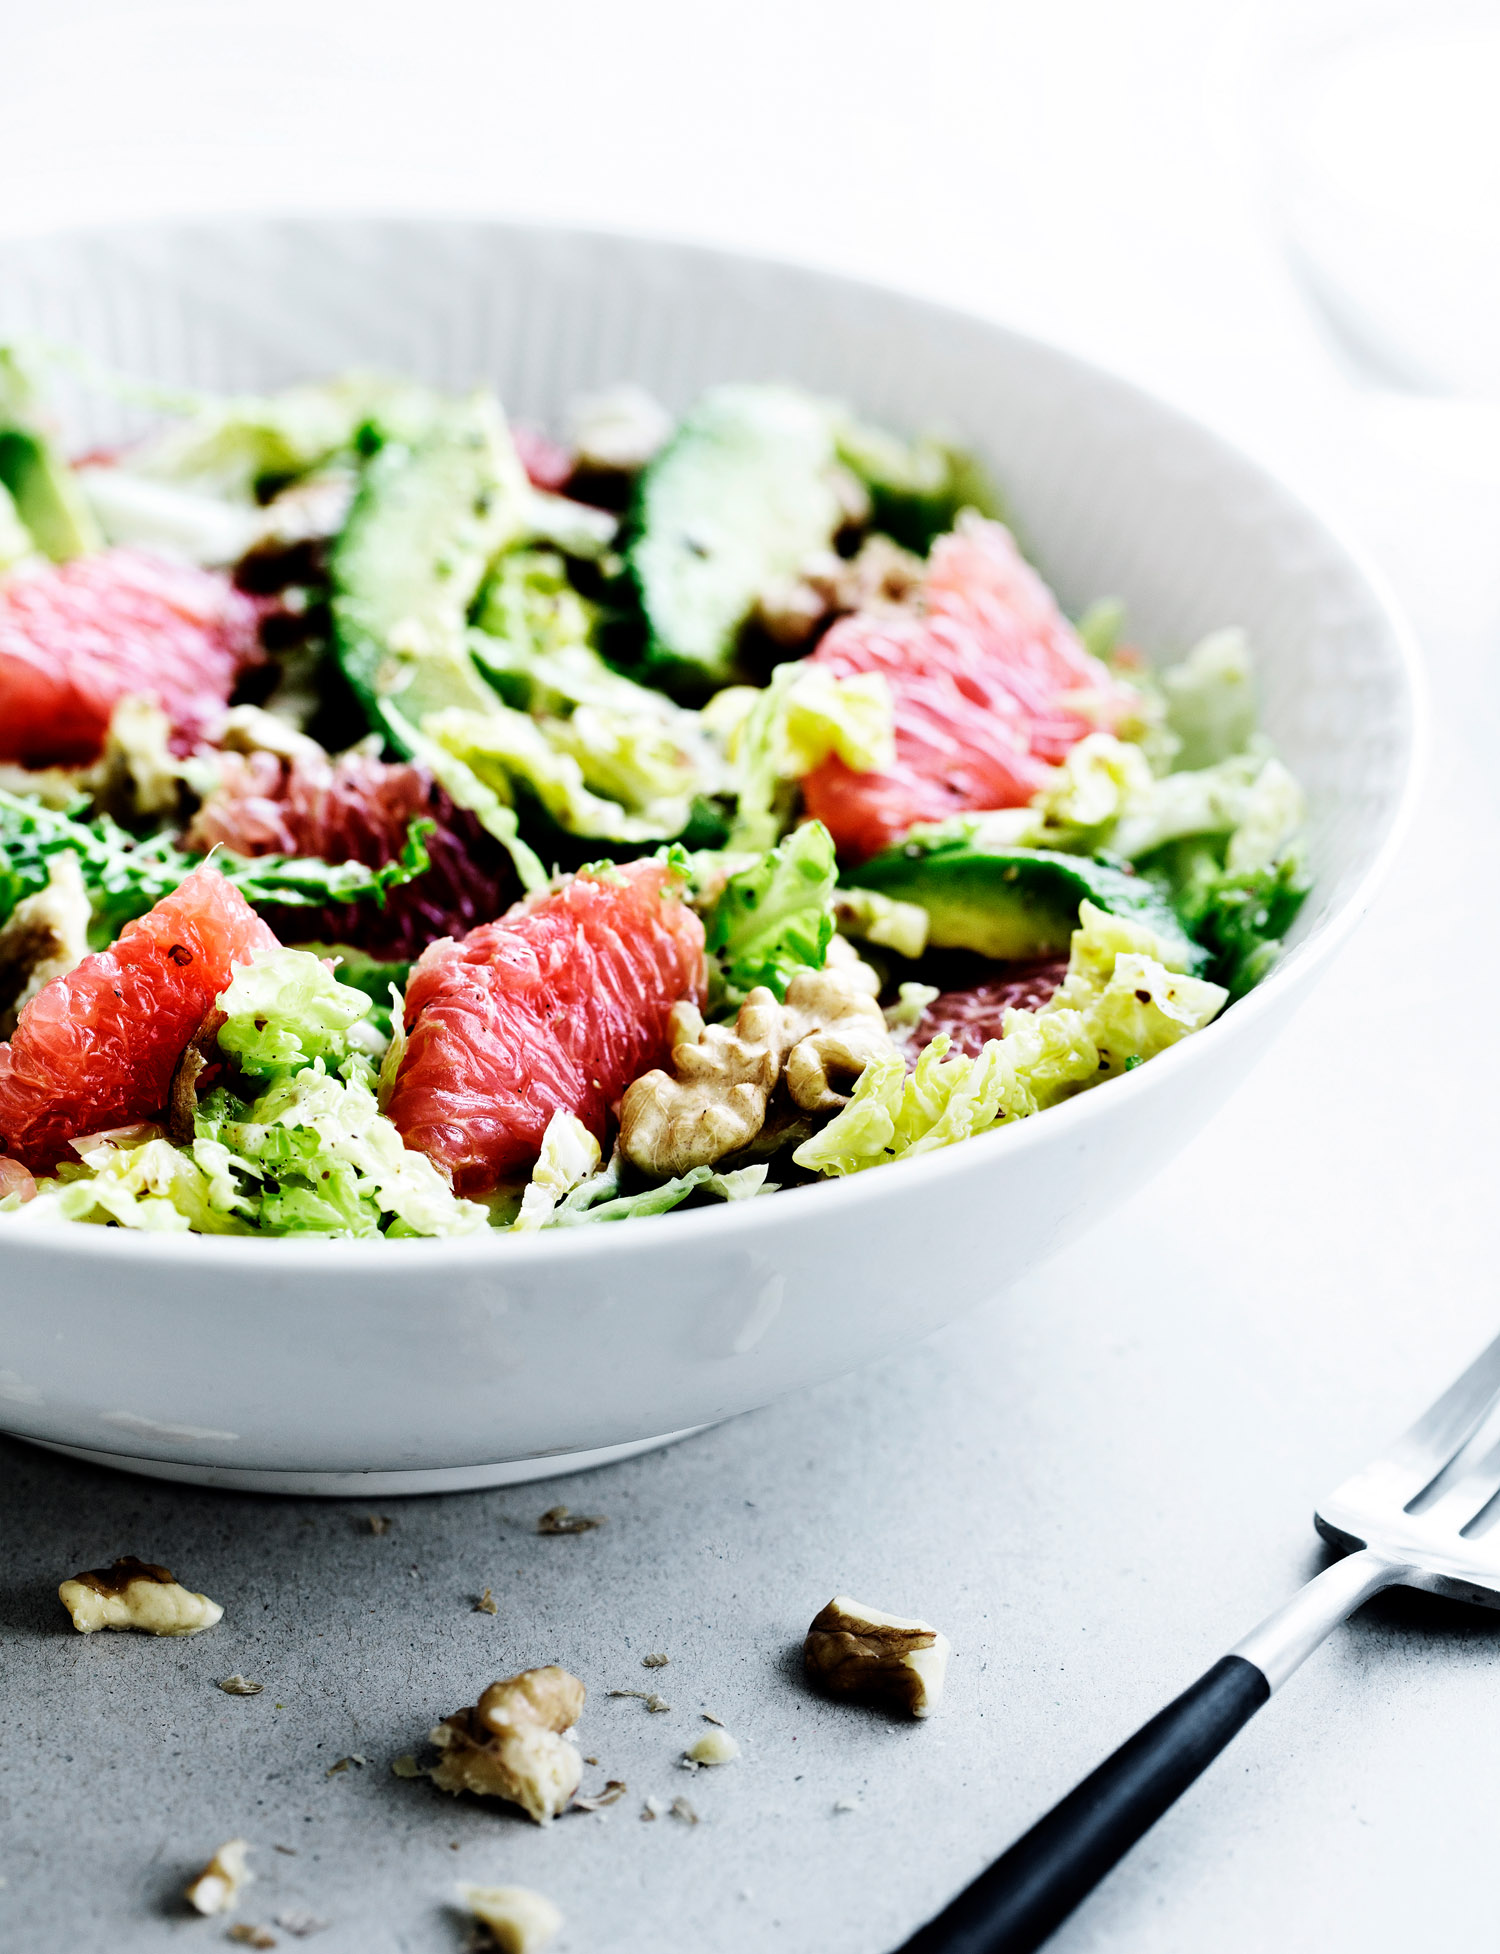 Winter Salad with Savoy Cabbage, Red Grapefruit, and Avocado